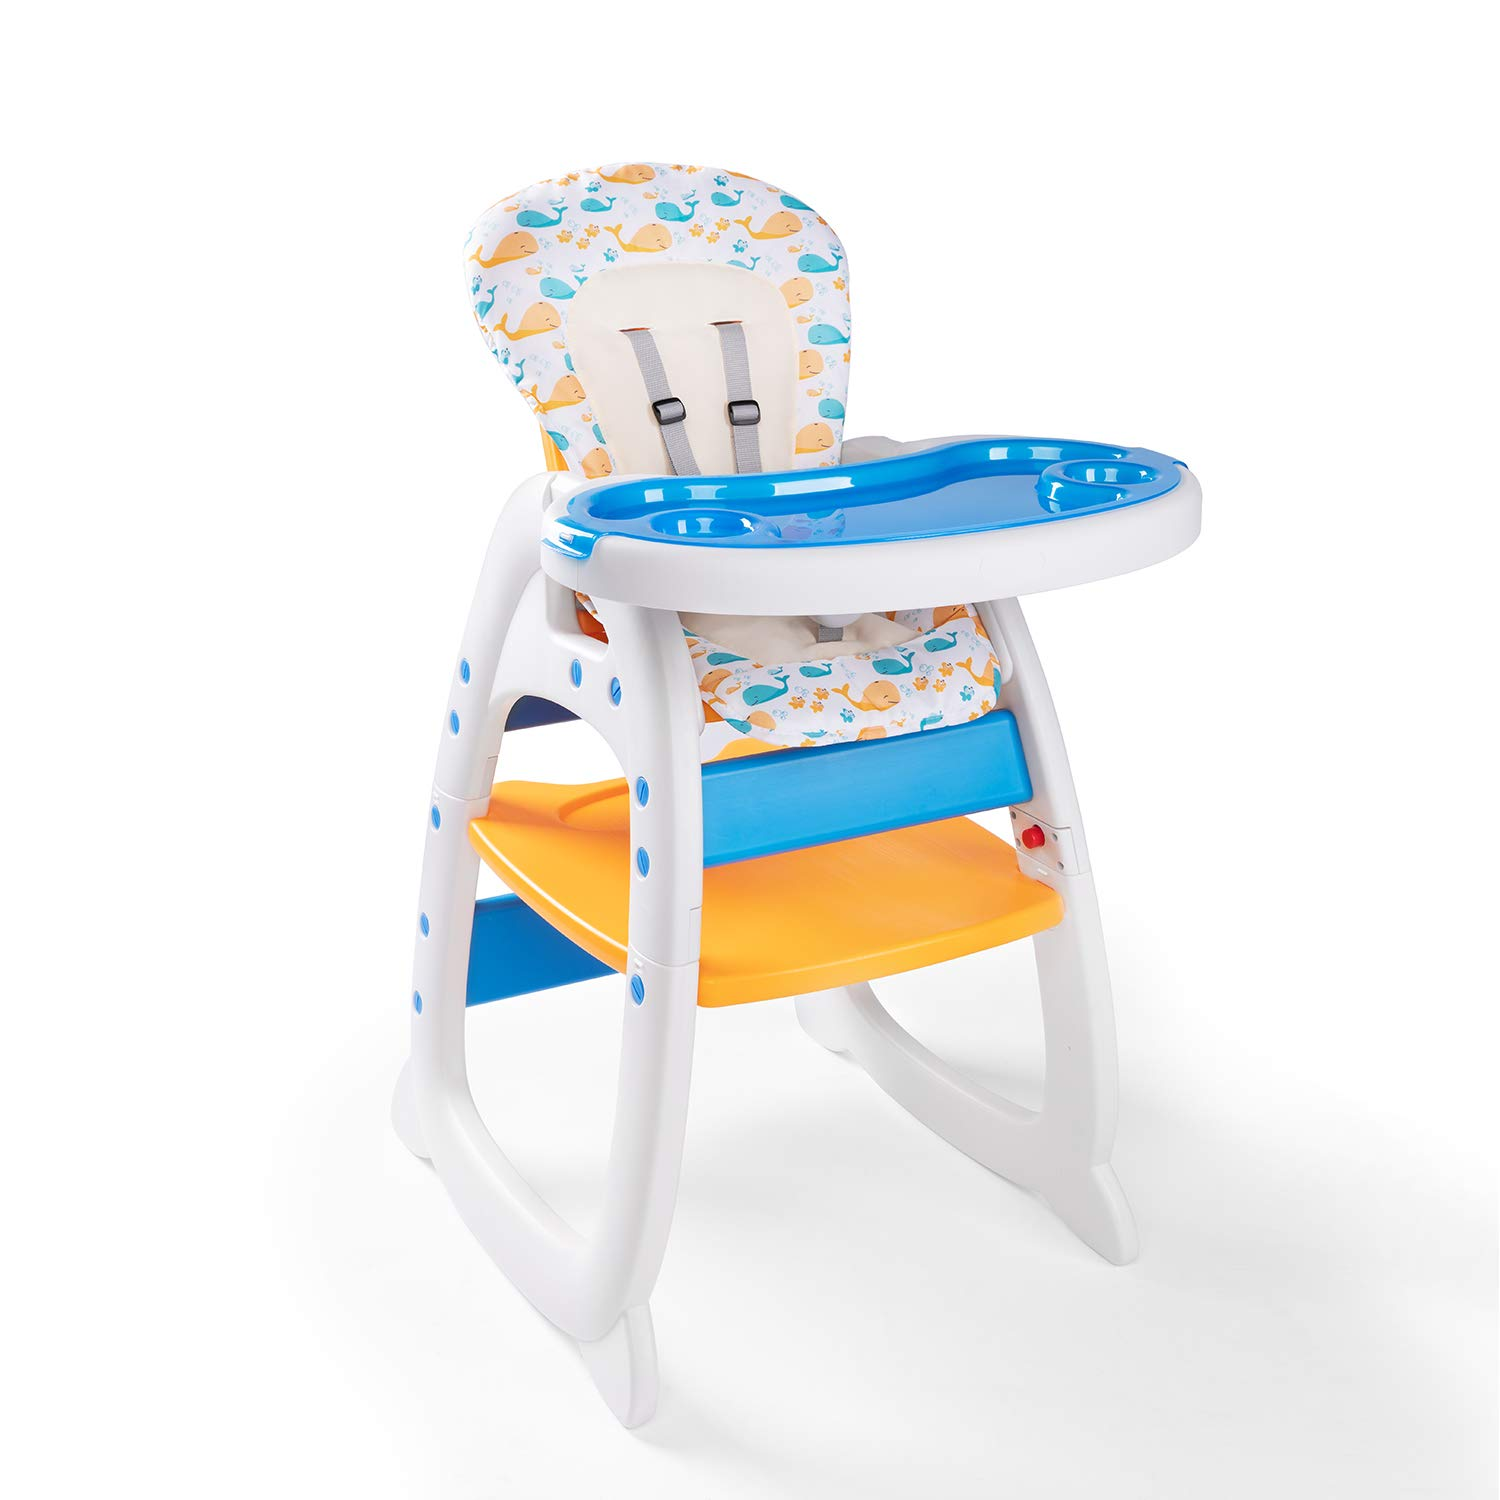 Bable Multifunctional Baby High Chair, Toddler Chair, Learning & Playing Table with Removable Tray and Backrest by Bable